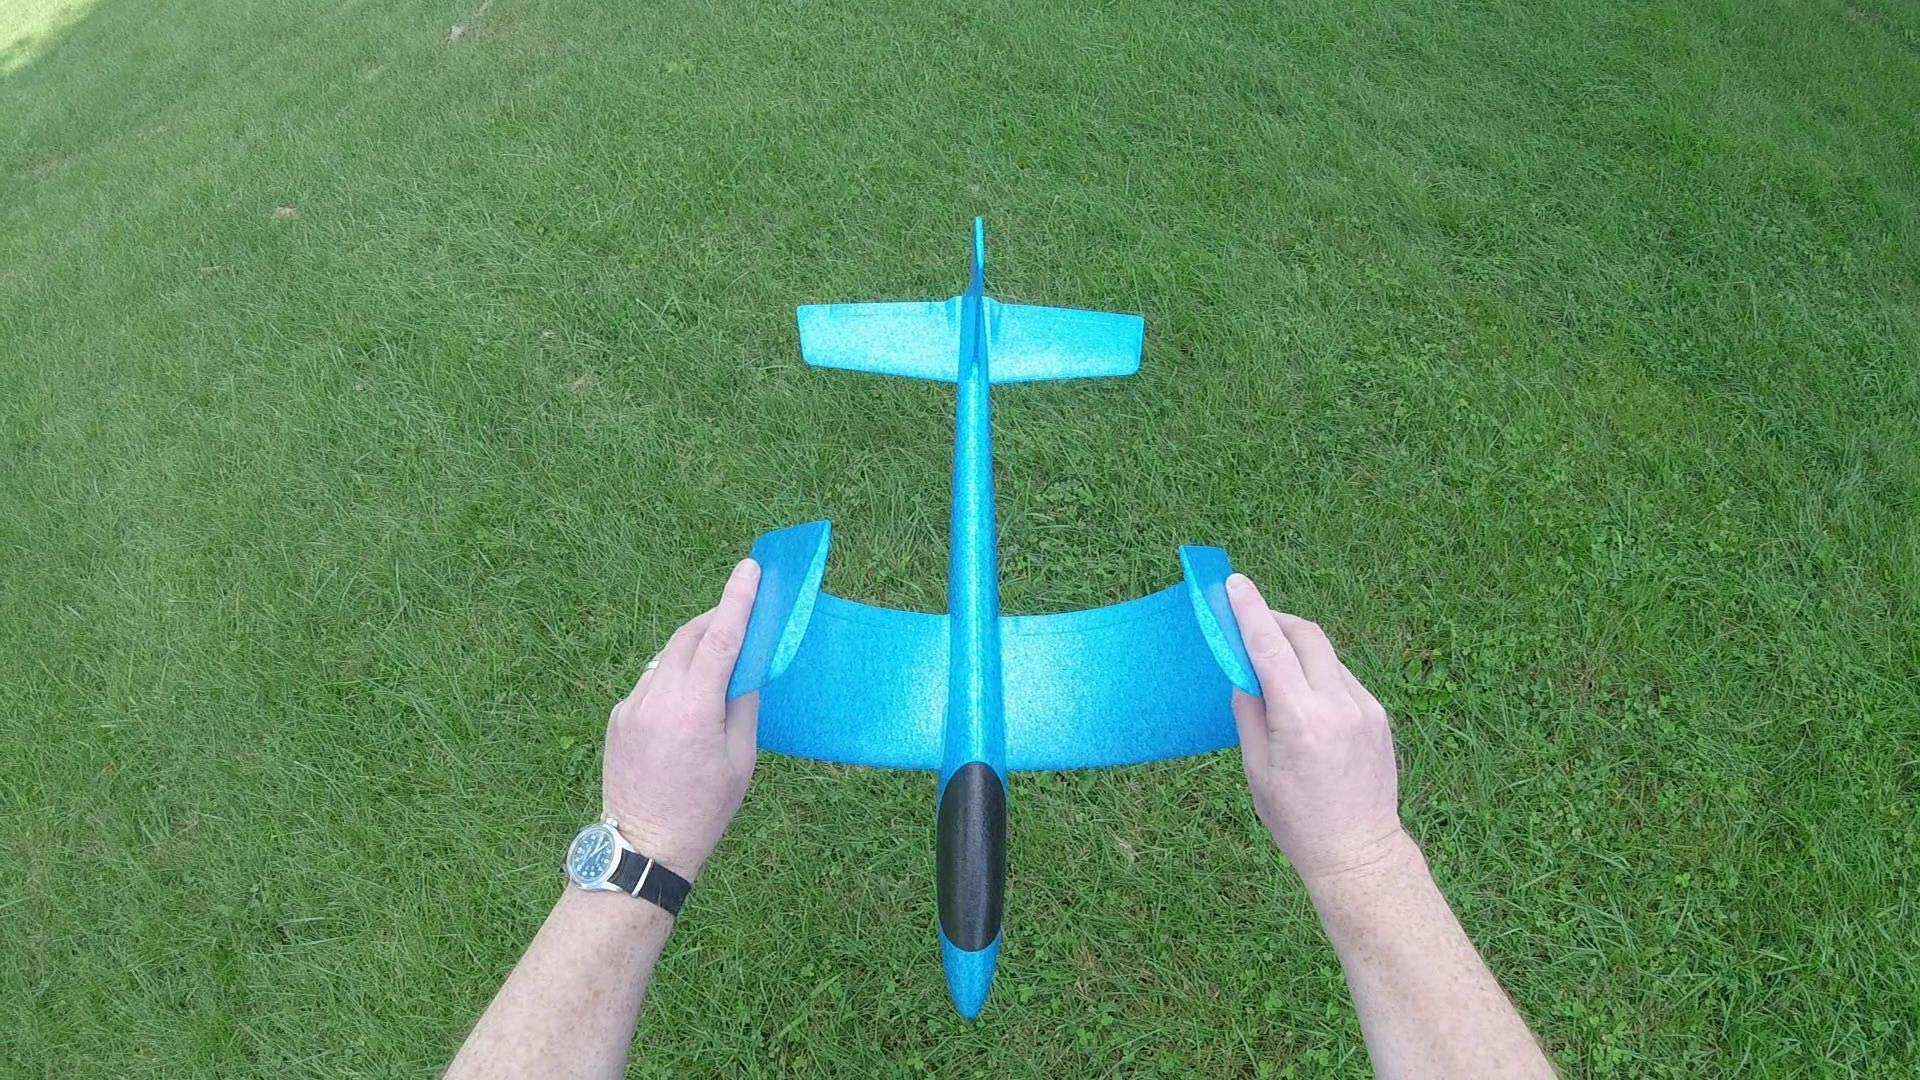 G-I-A-N-T (Almost 3 FEET), Great Flying, Almost Unbreakable, Large Foam Glider Plane. Virgin EPP Foam. Ideal for RC Conversion! Similar to LIDL Gliders Sold Out in Europe! by Daddy's Flyers (Image #9)